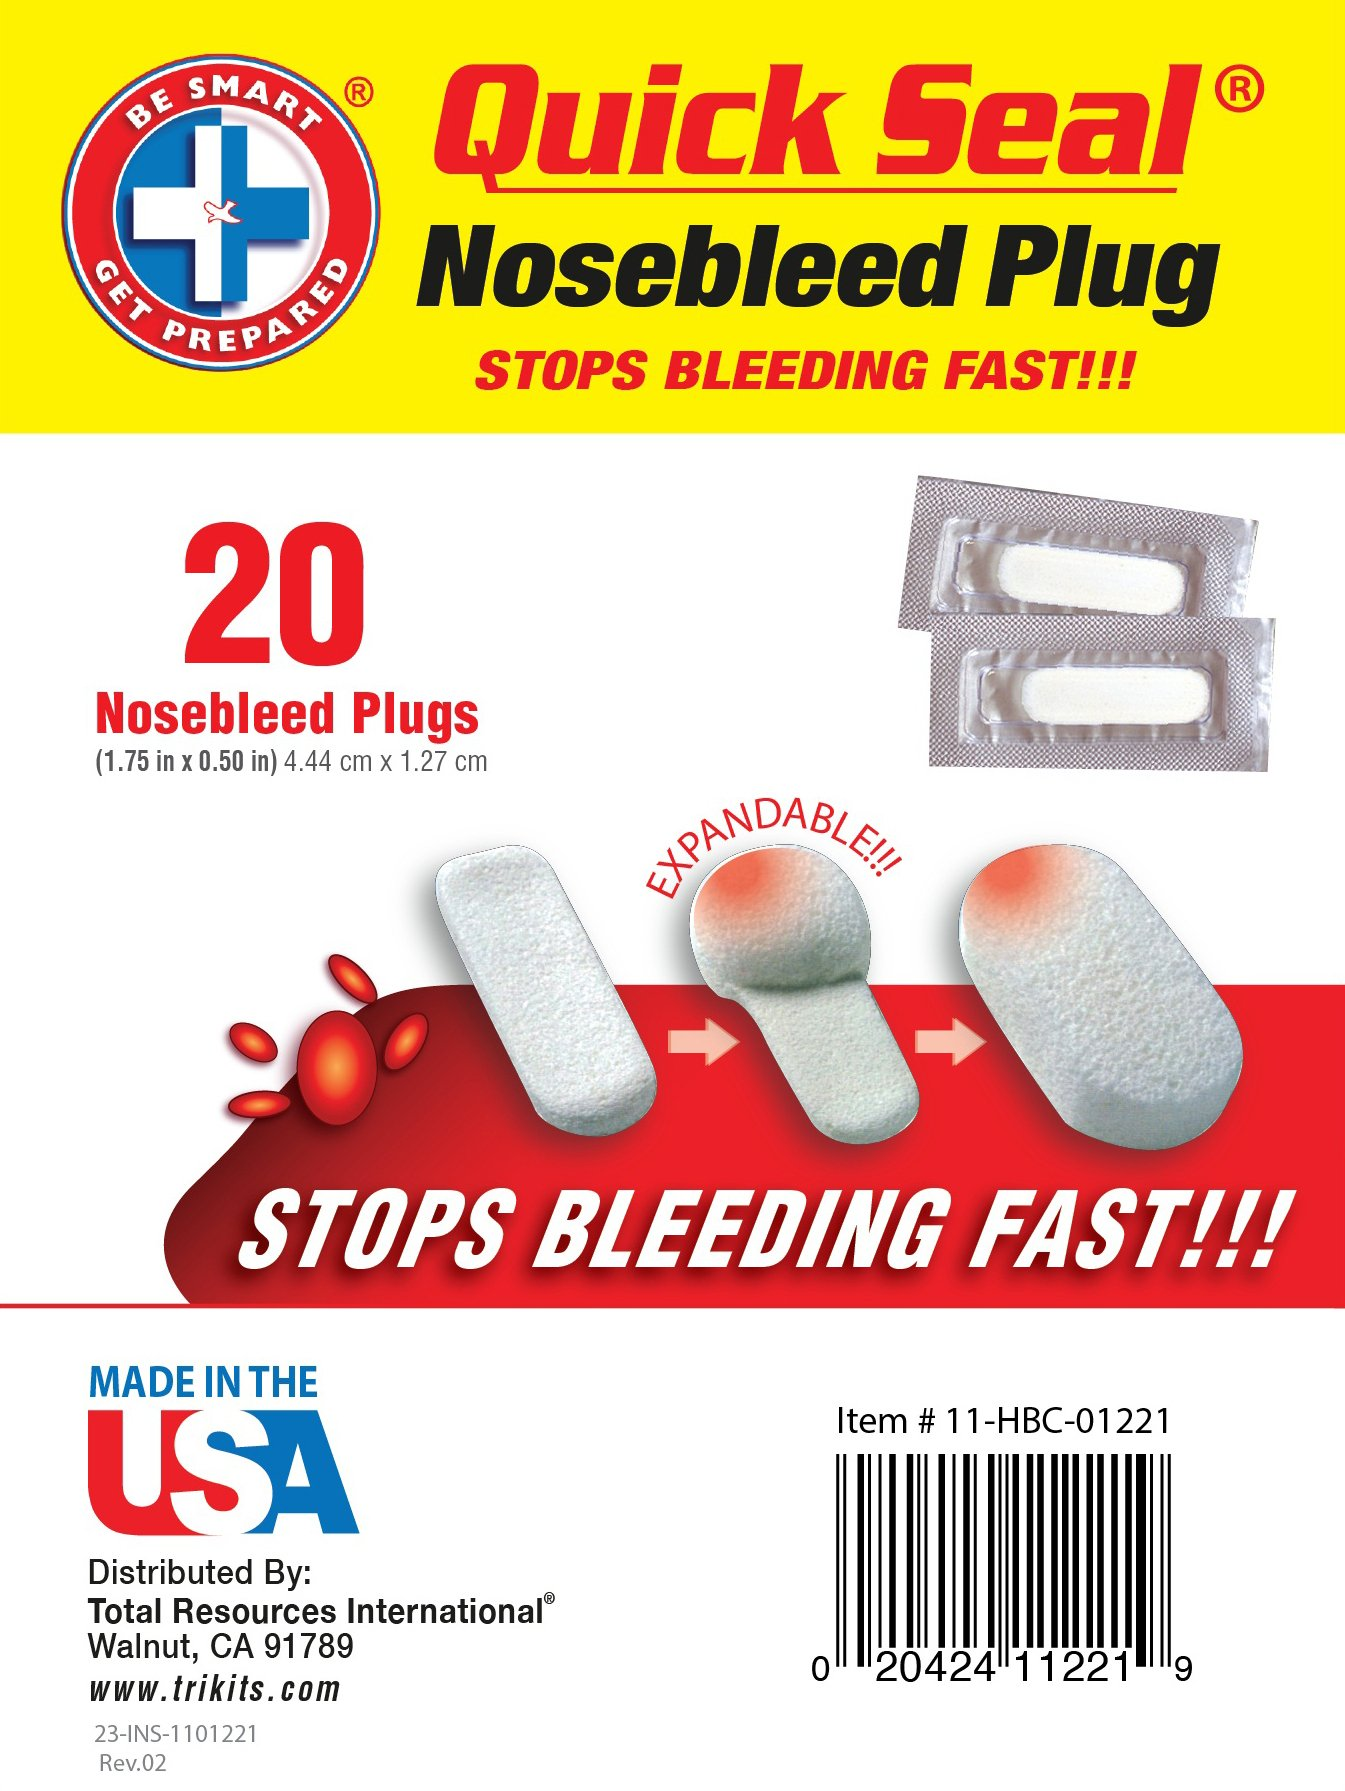 Be Smart Get Prepared Quick Seal Nosebleed Plugs. Stops Bleeding Fast, Non-Stick and Easy to Remove. (20 Plugs Included). by Be Smart Get Prepared (Image #1)